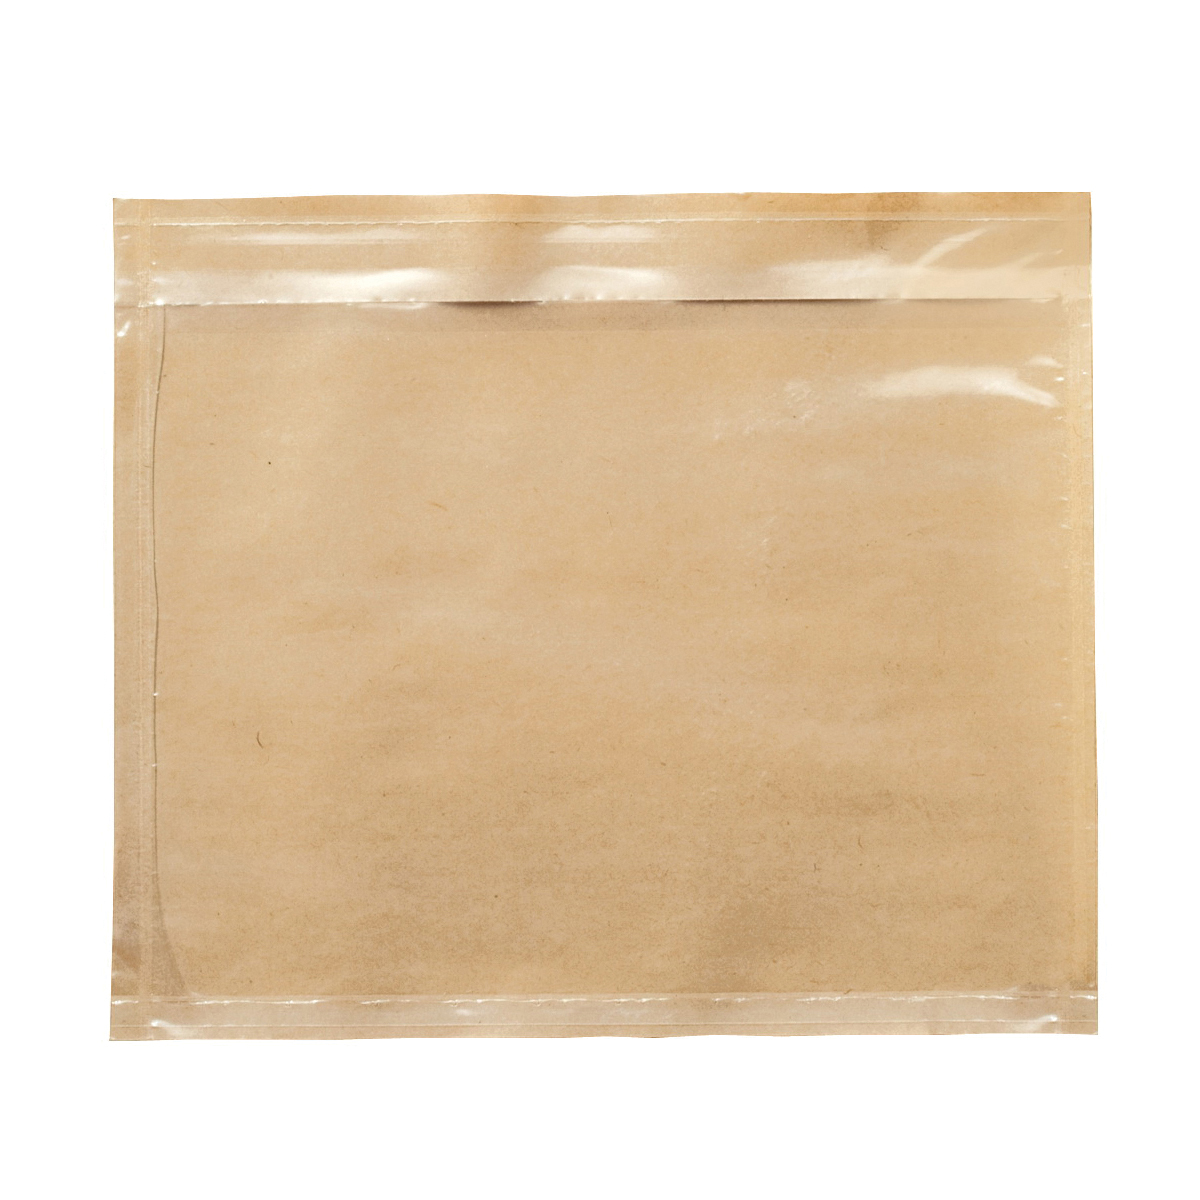 3M™ 021200-37589 Non-Printed Packing List Envelope, 6 in L x 7 in W, Polyethylene Film Backing, Clear